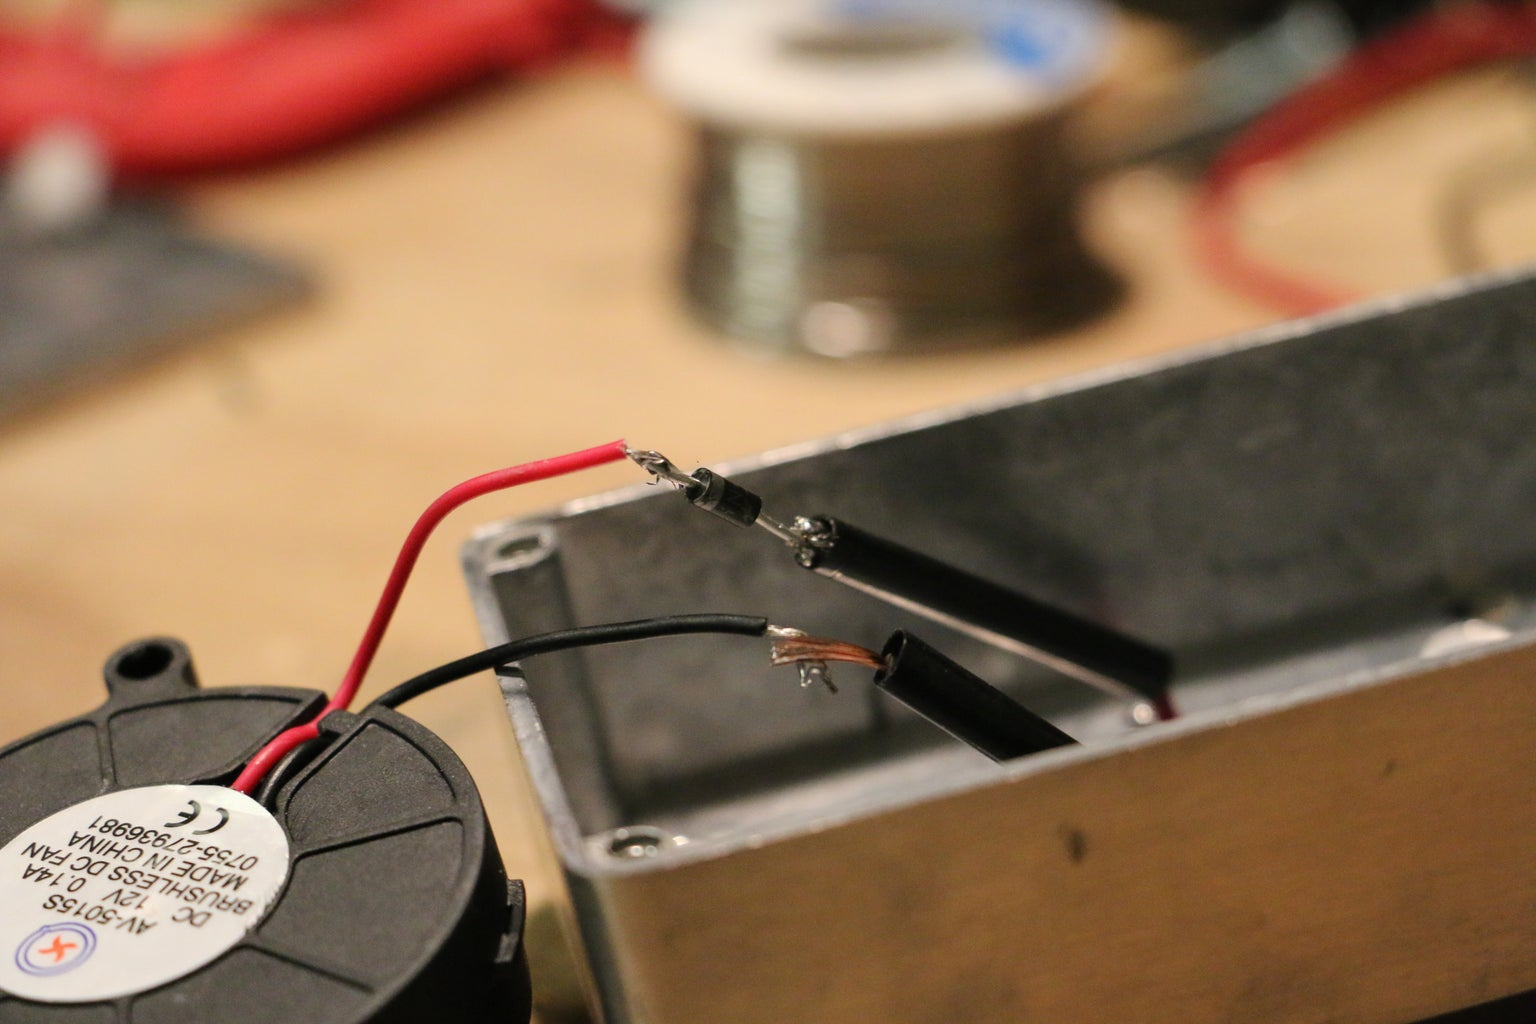 Attaching Thermoelectric Module